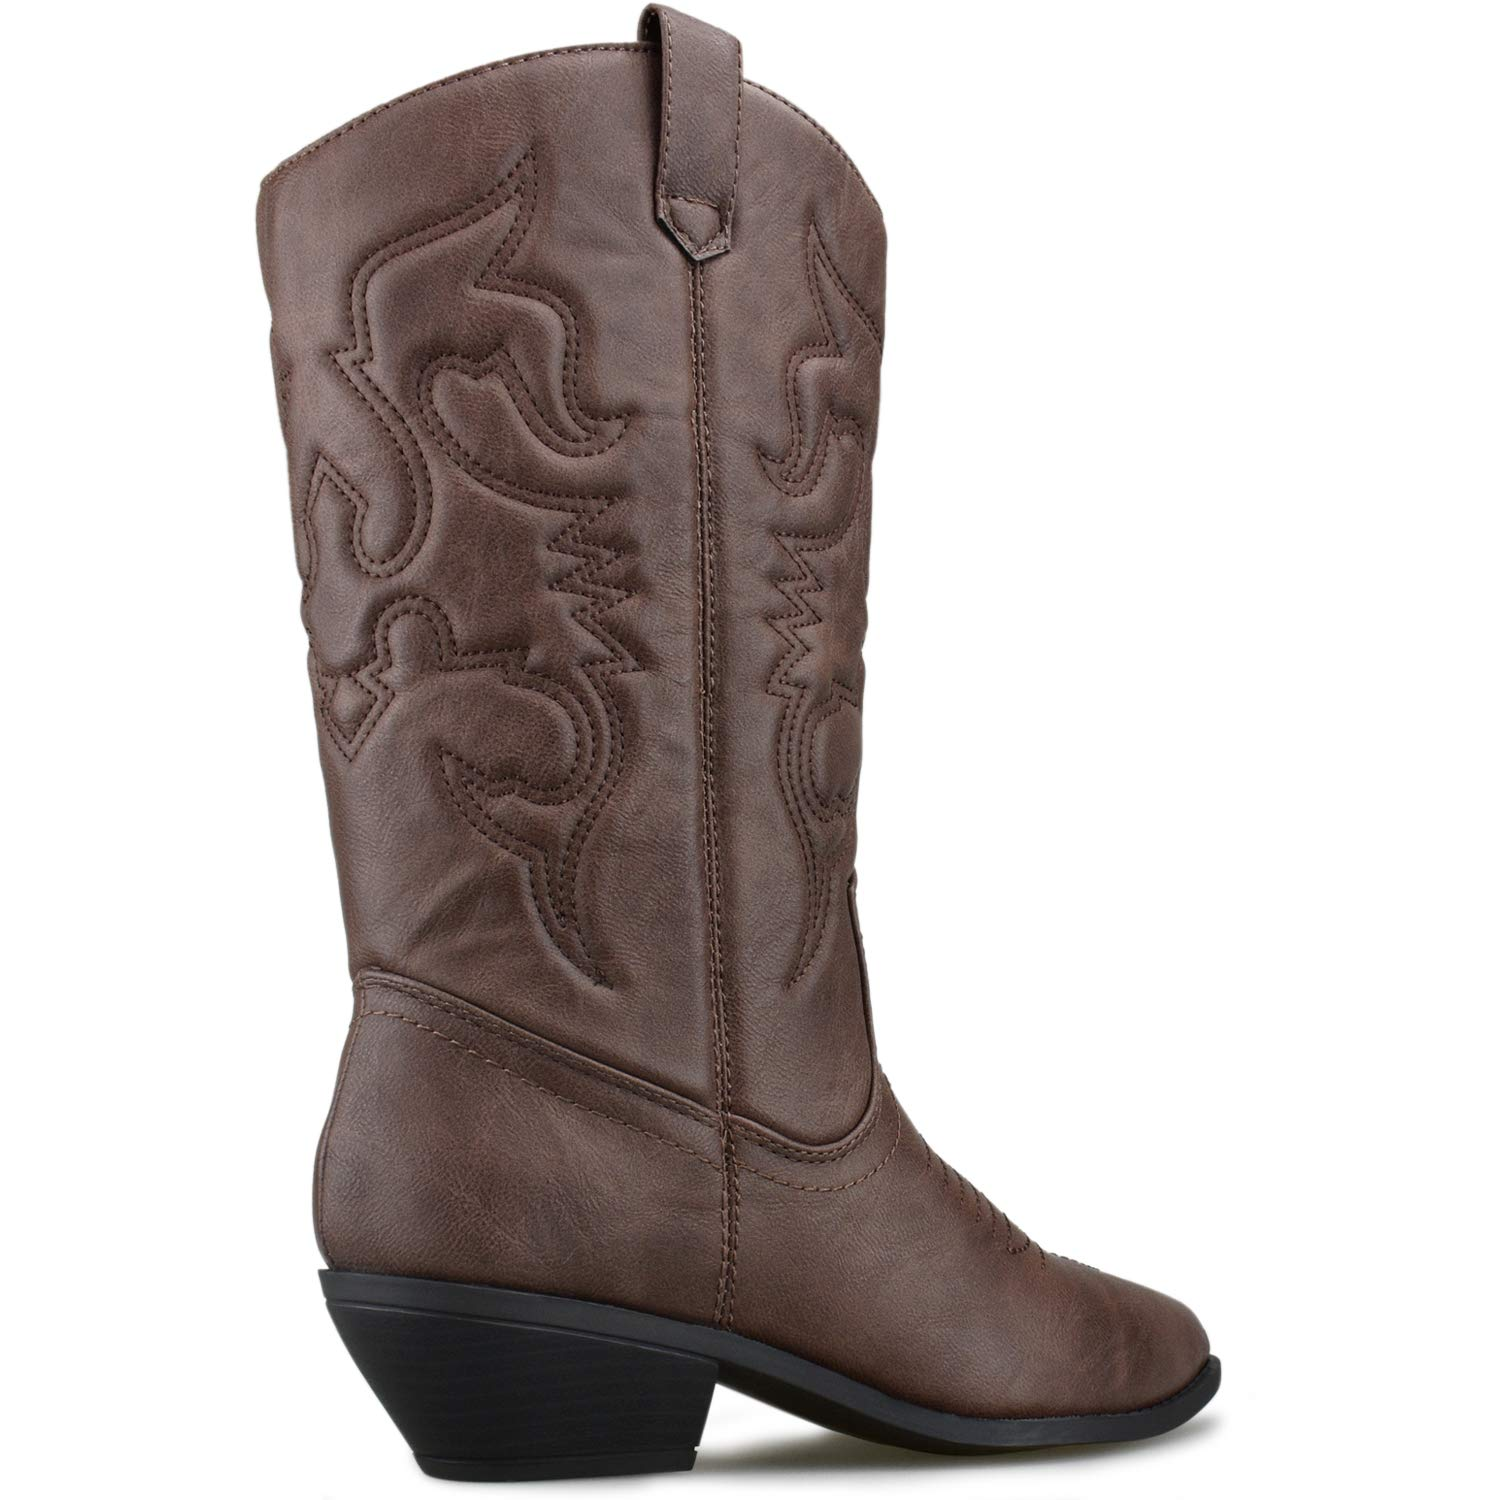 1dca8a5503e Premier Standard - Western Cowboy Pointed Toe Knee High Pull On Tabs ...